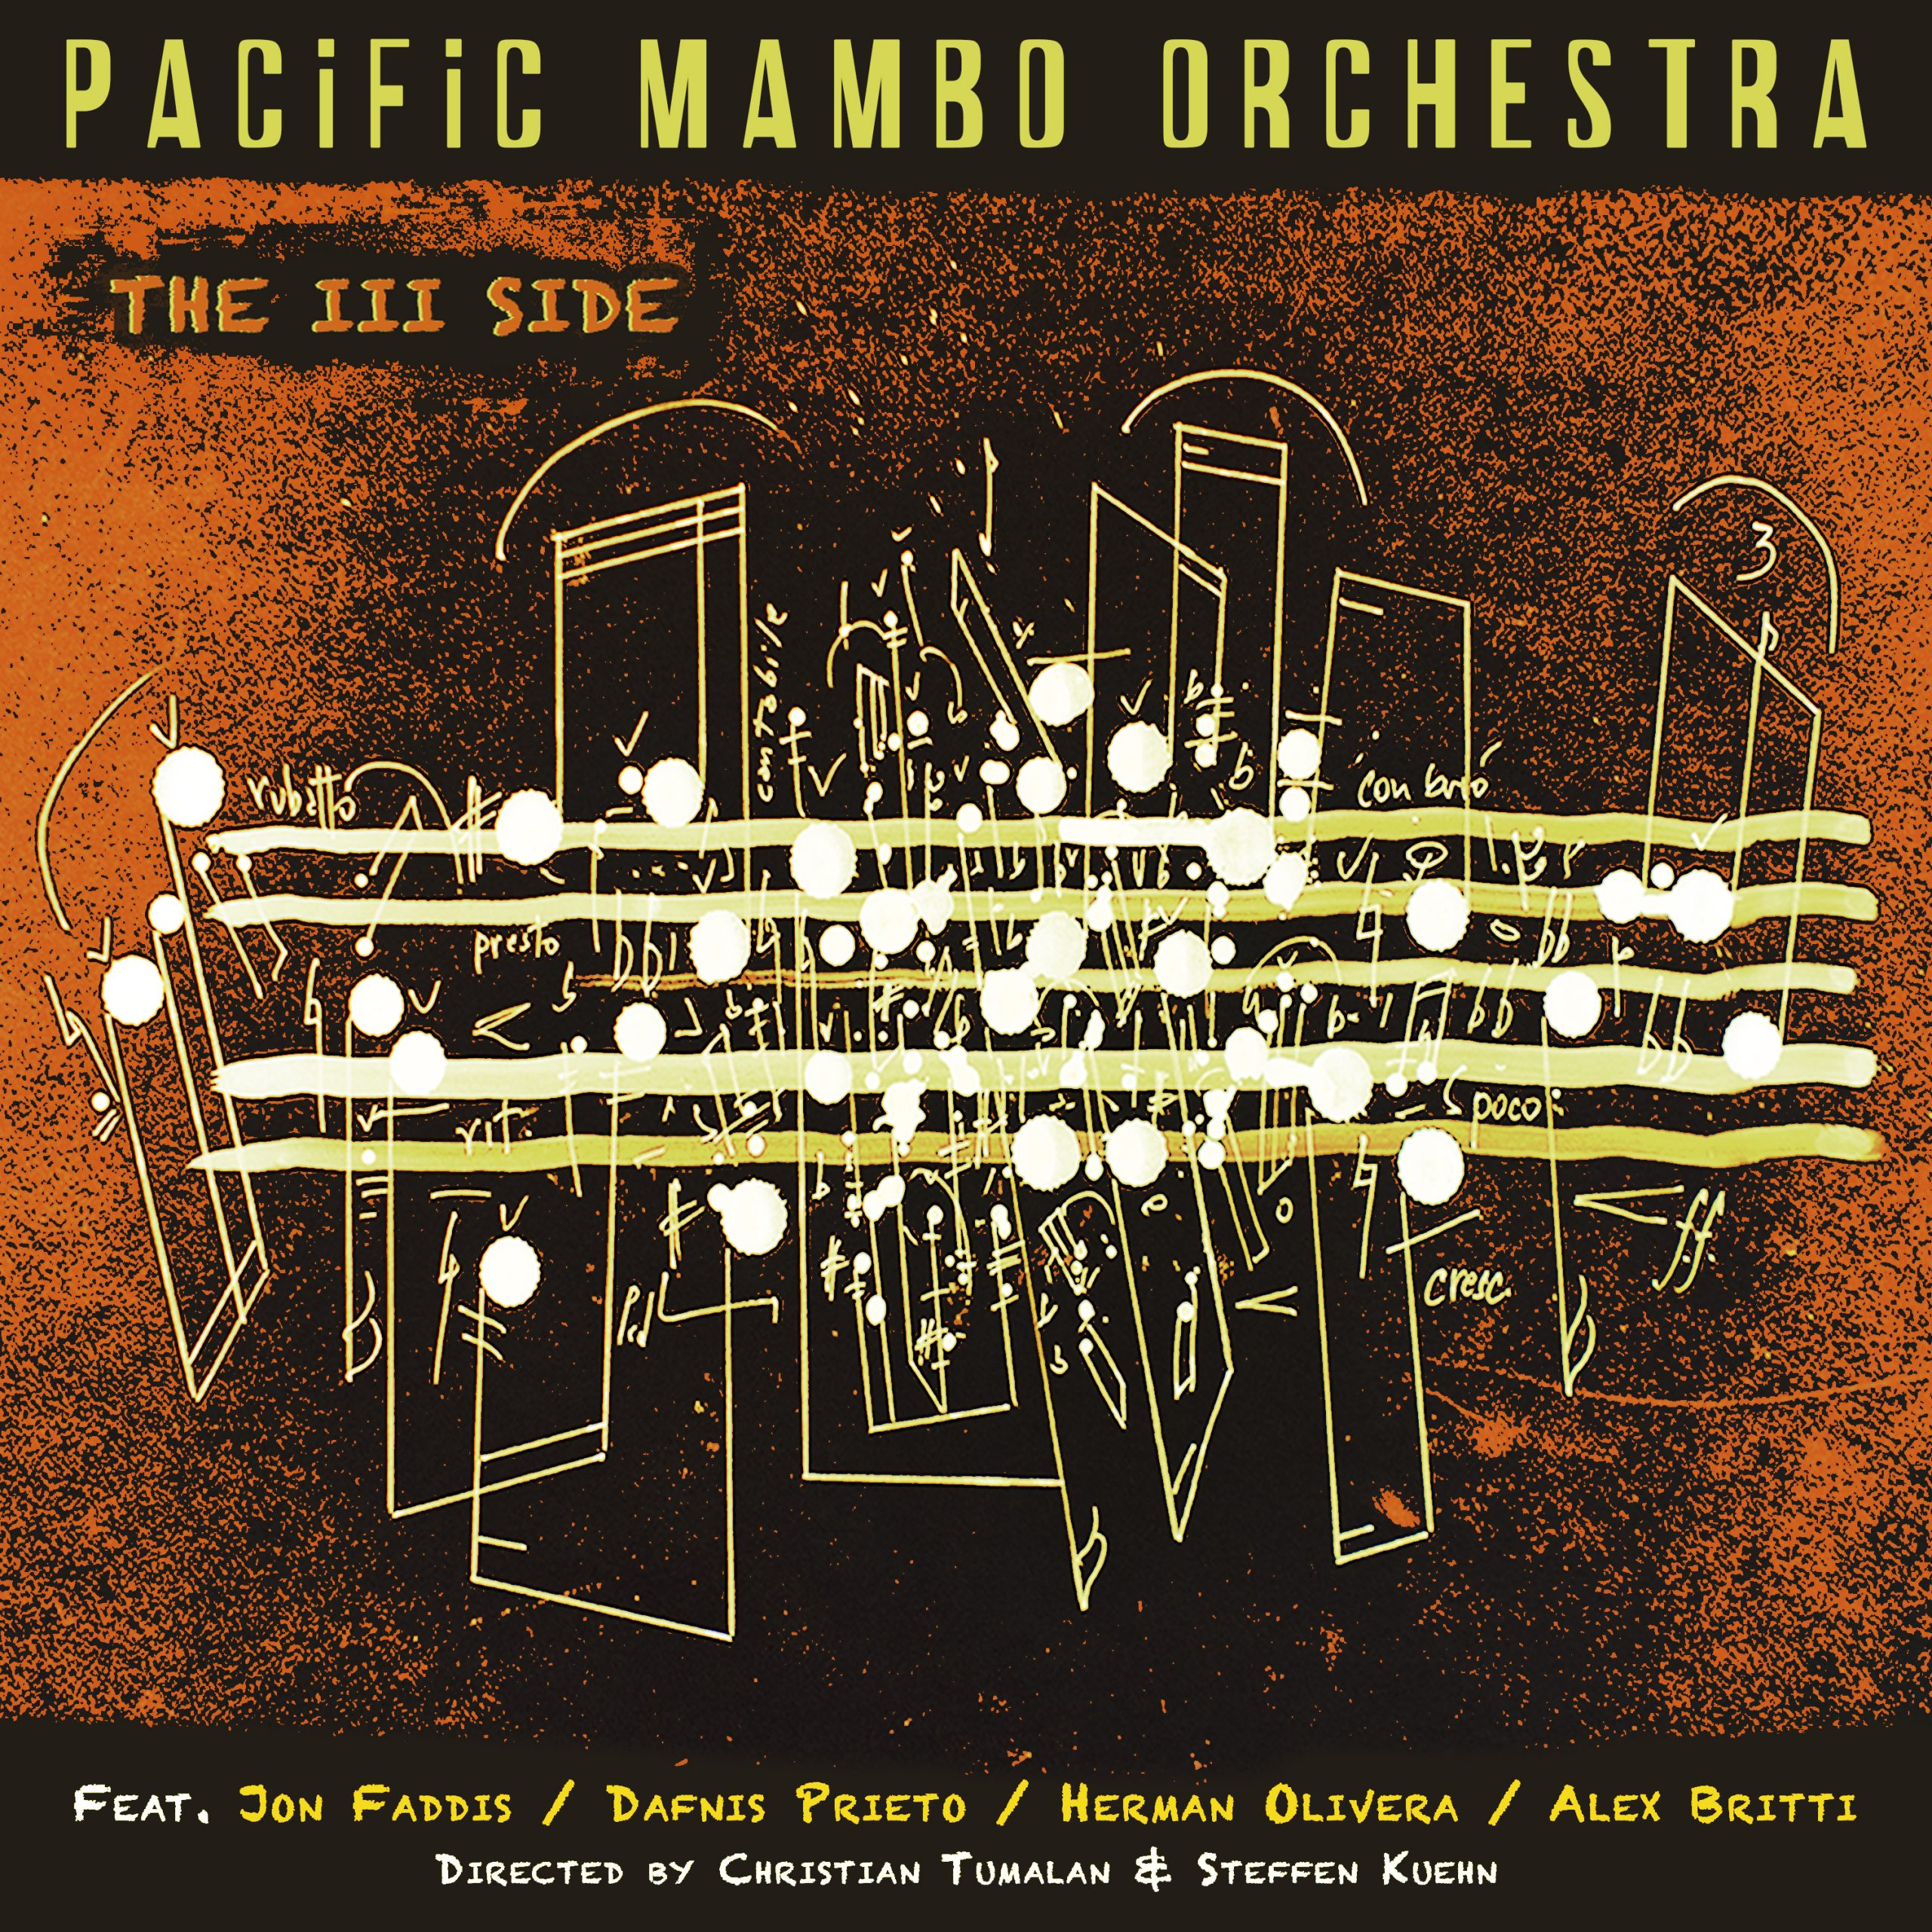 REVIEW: The Pacific Mambo Orchestra Reviewed By Musical Memoir's Blog